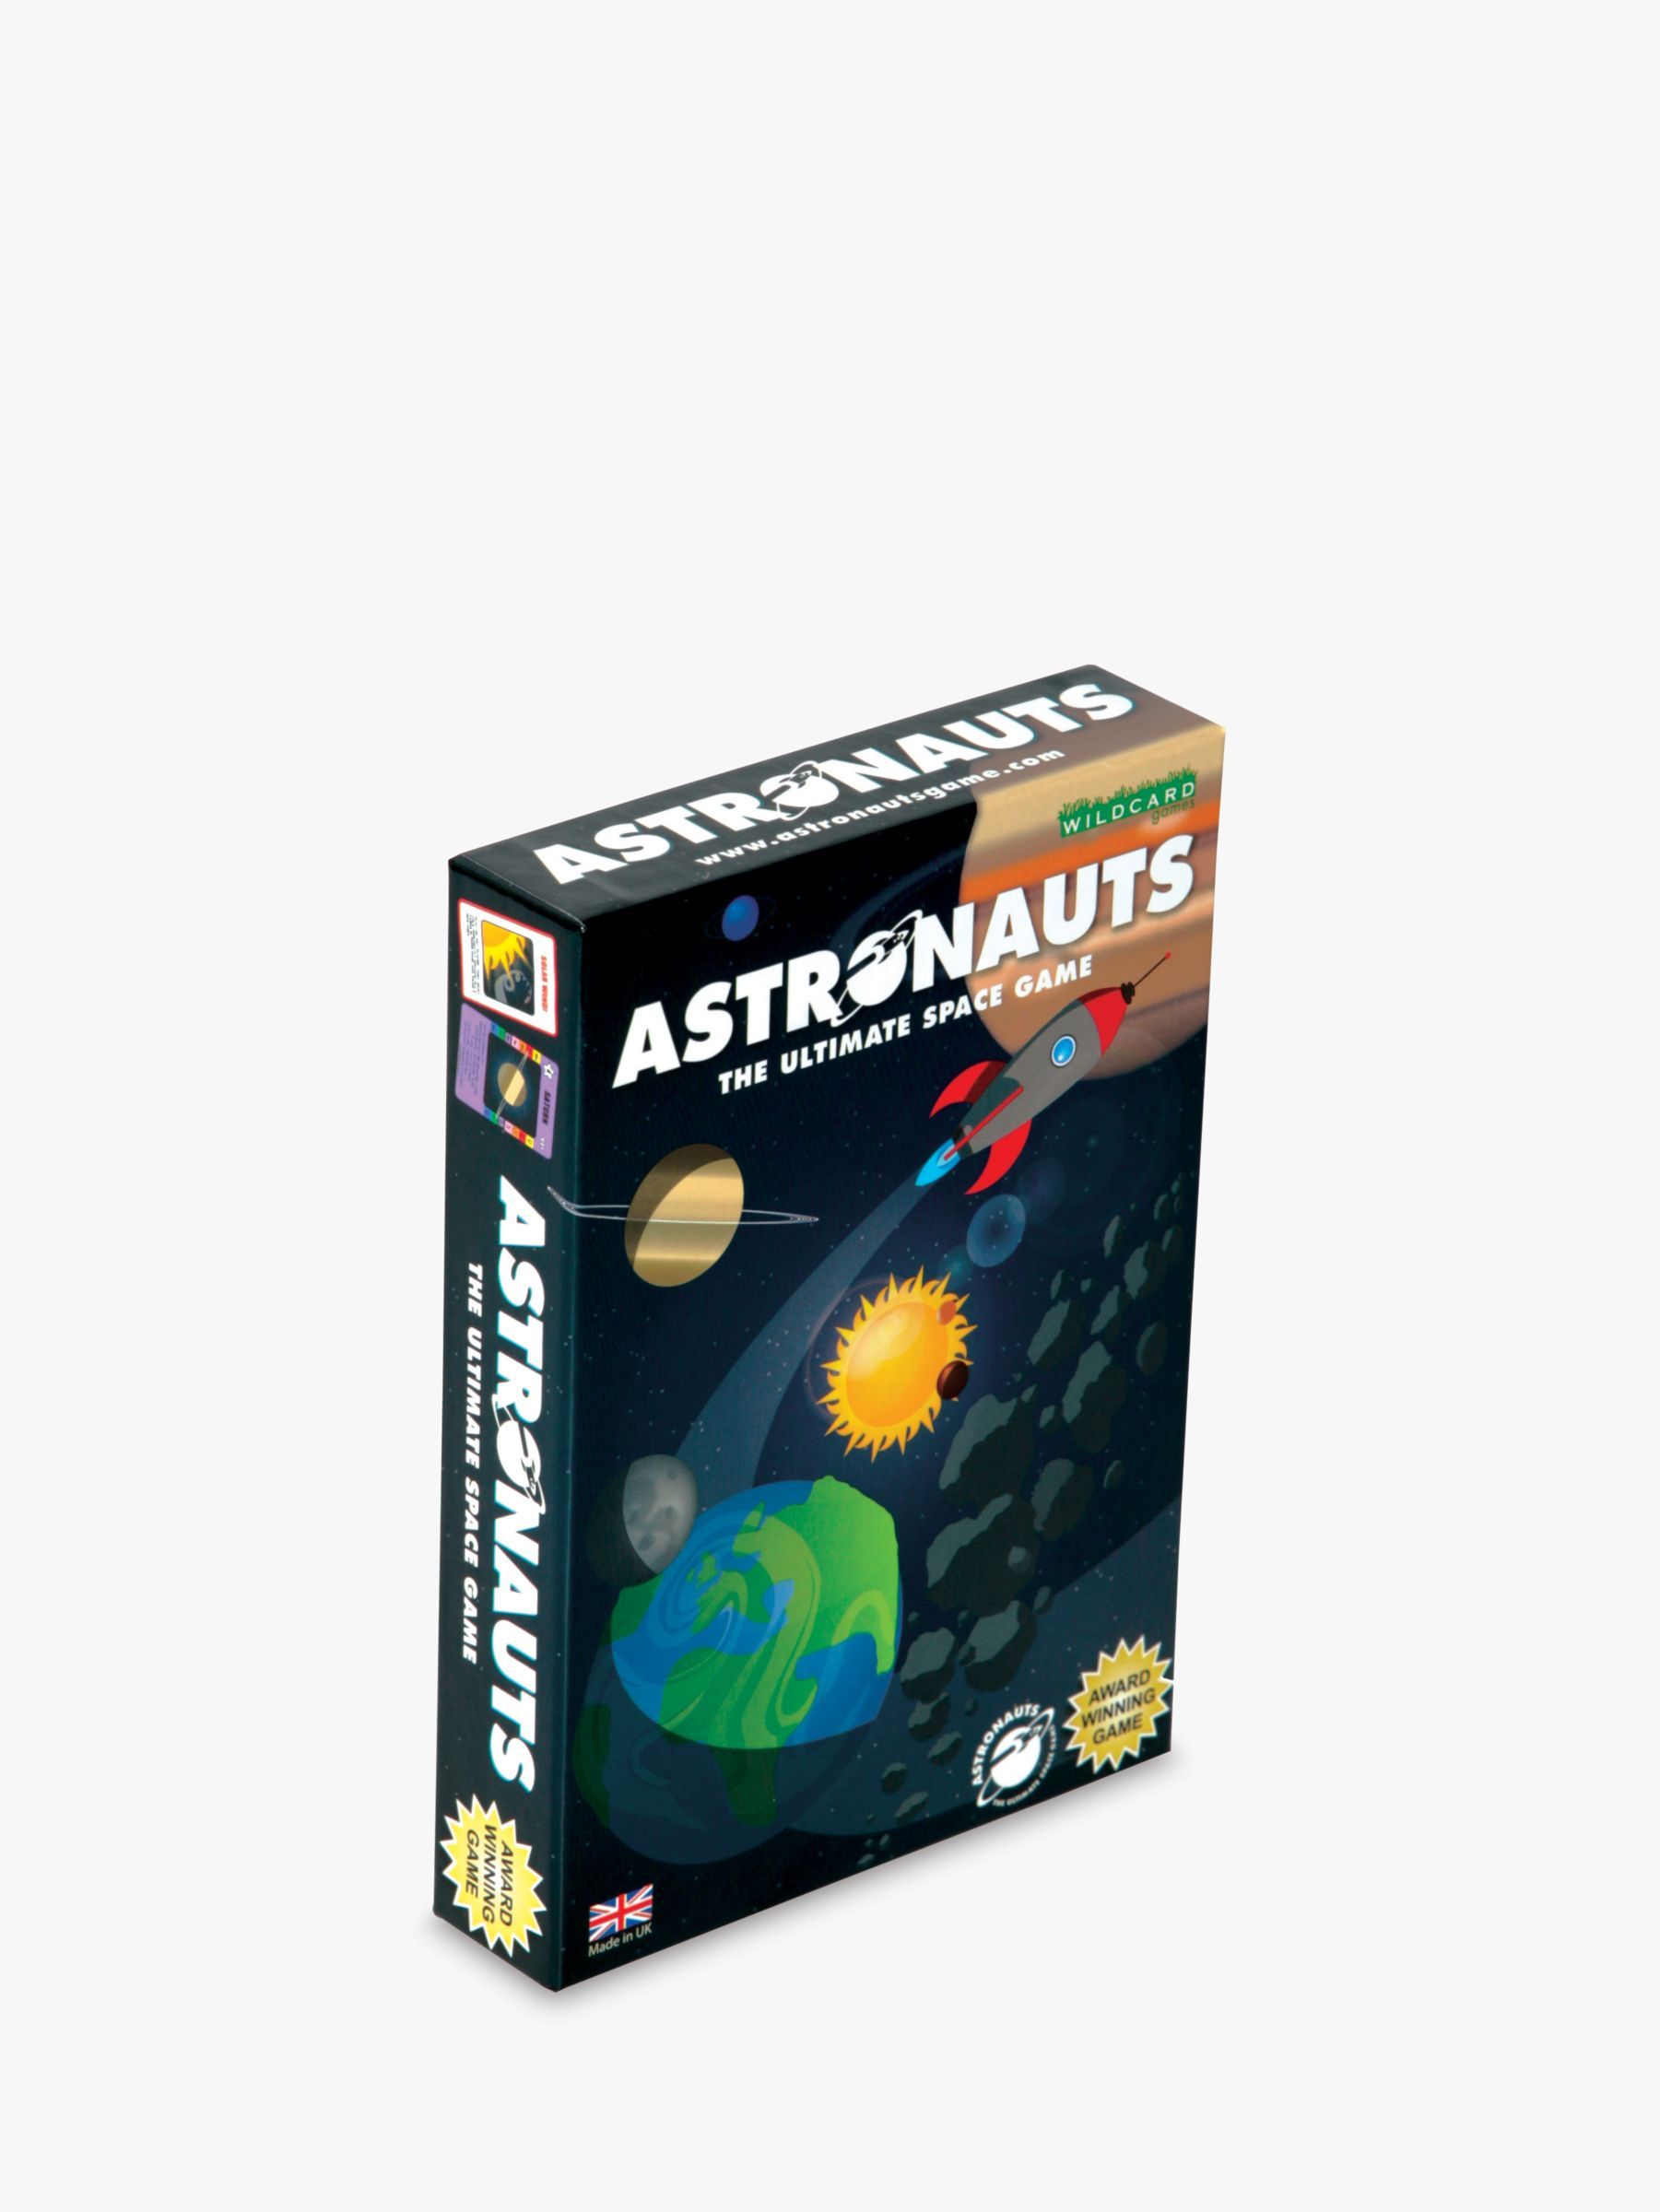 Wild Card Games Wild Card Games Astronauts Space Game